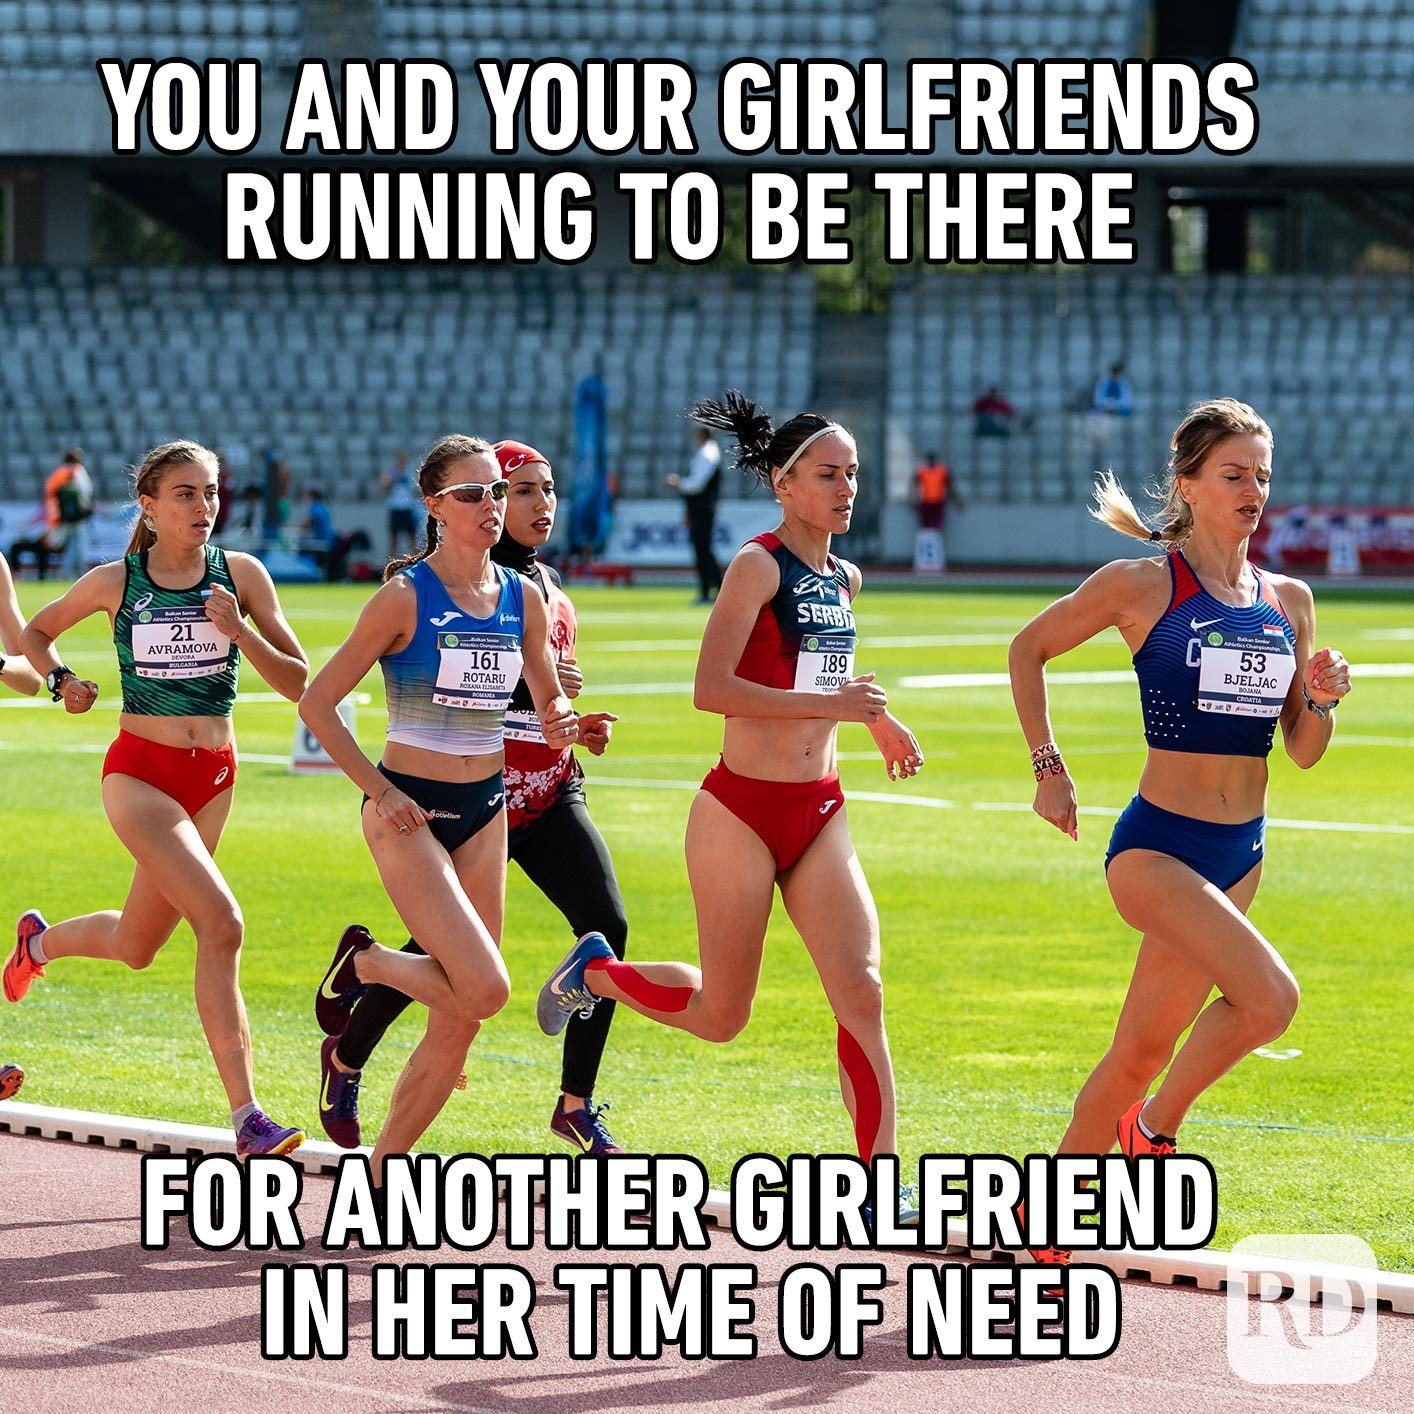 Women running on a track. Meme: You and your girlfriends running to be there for another girlfriend in her time of need